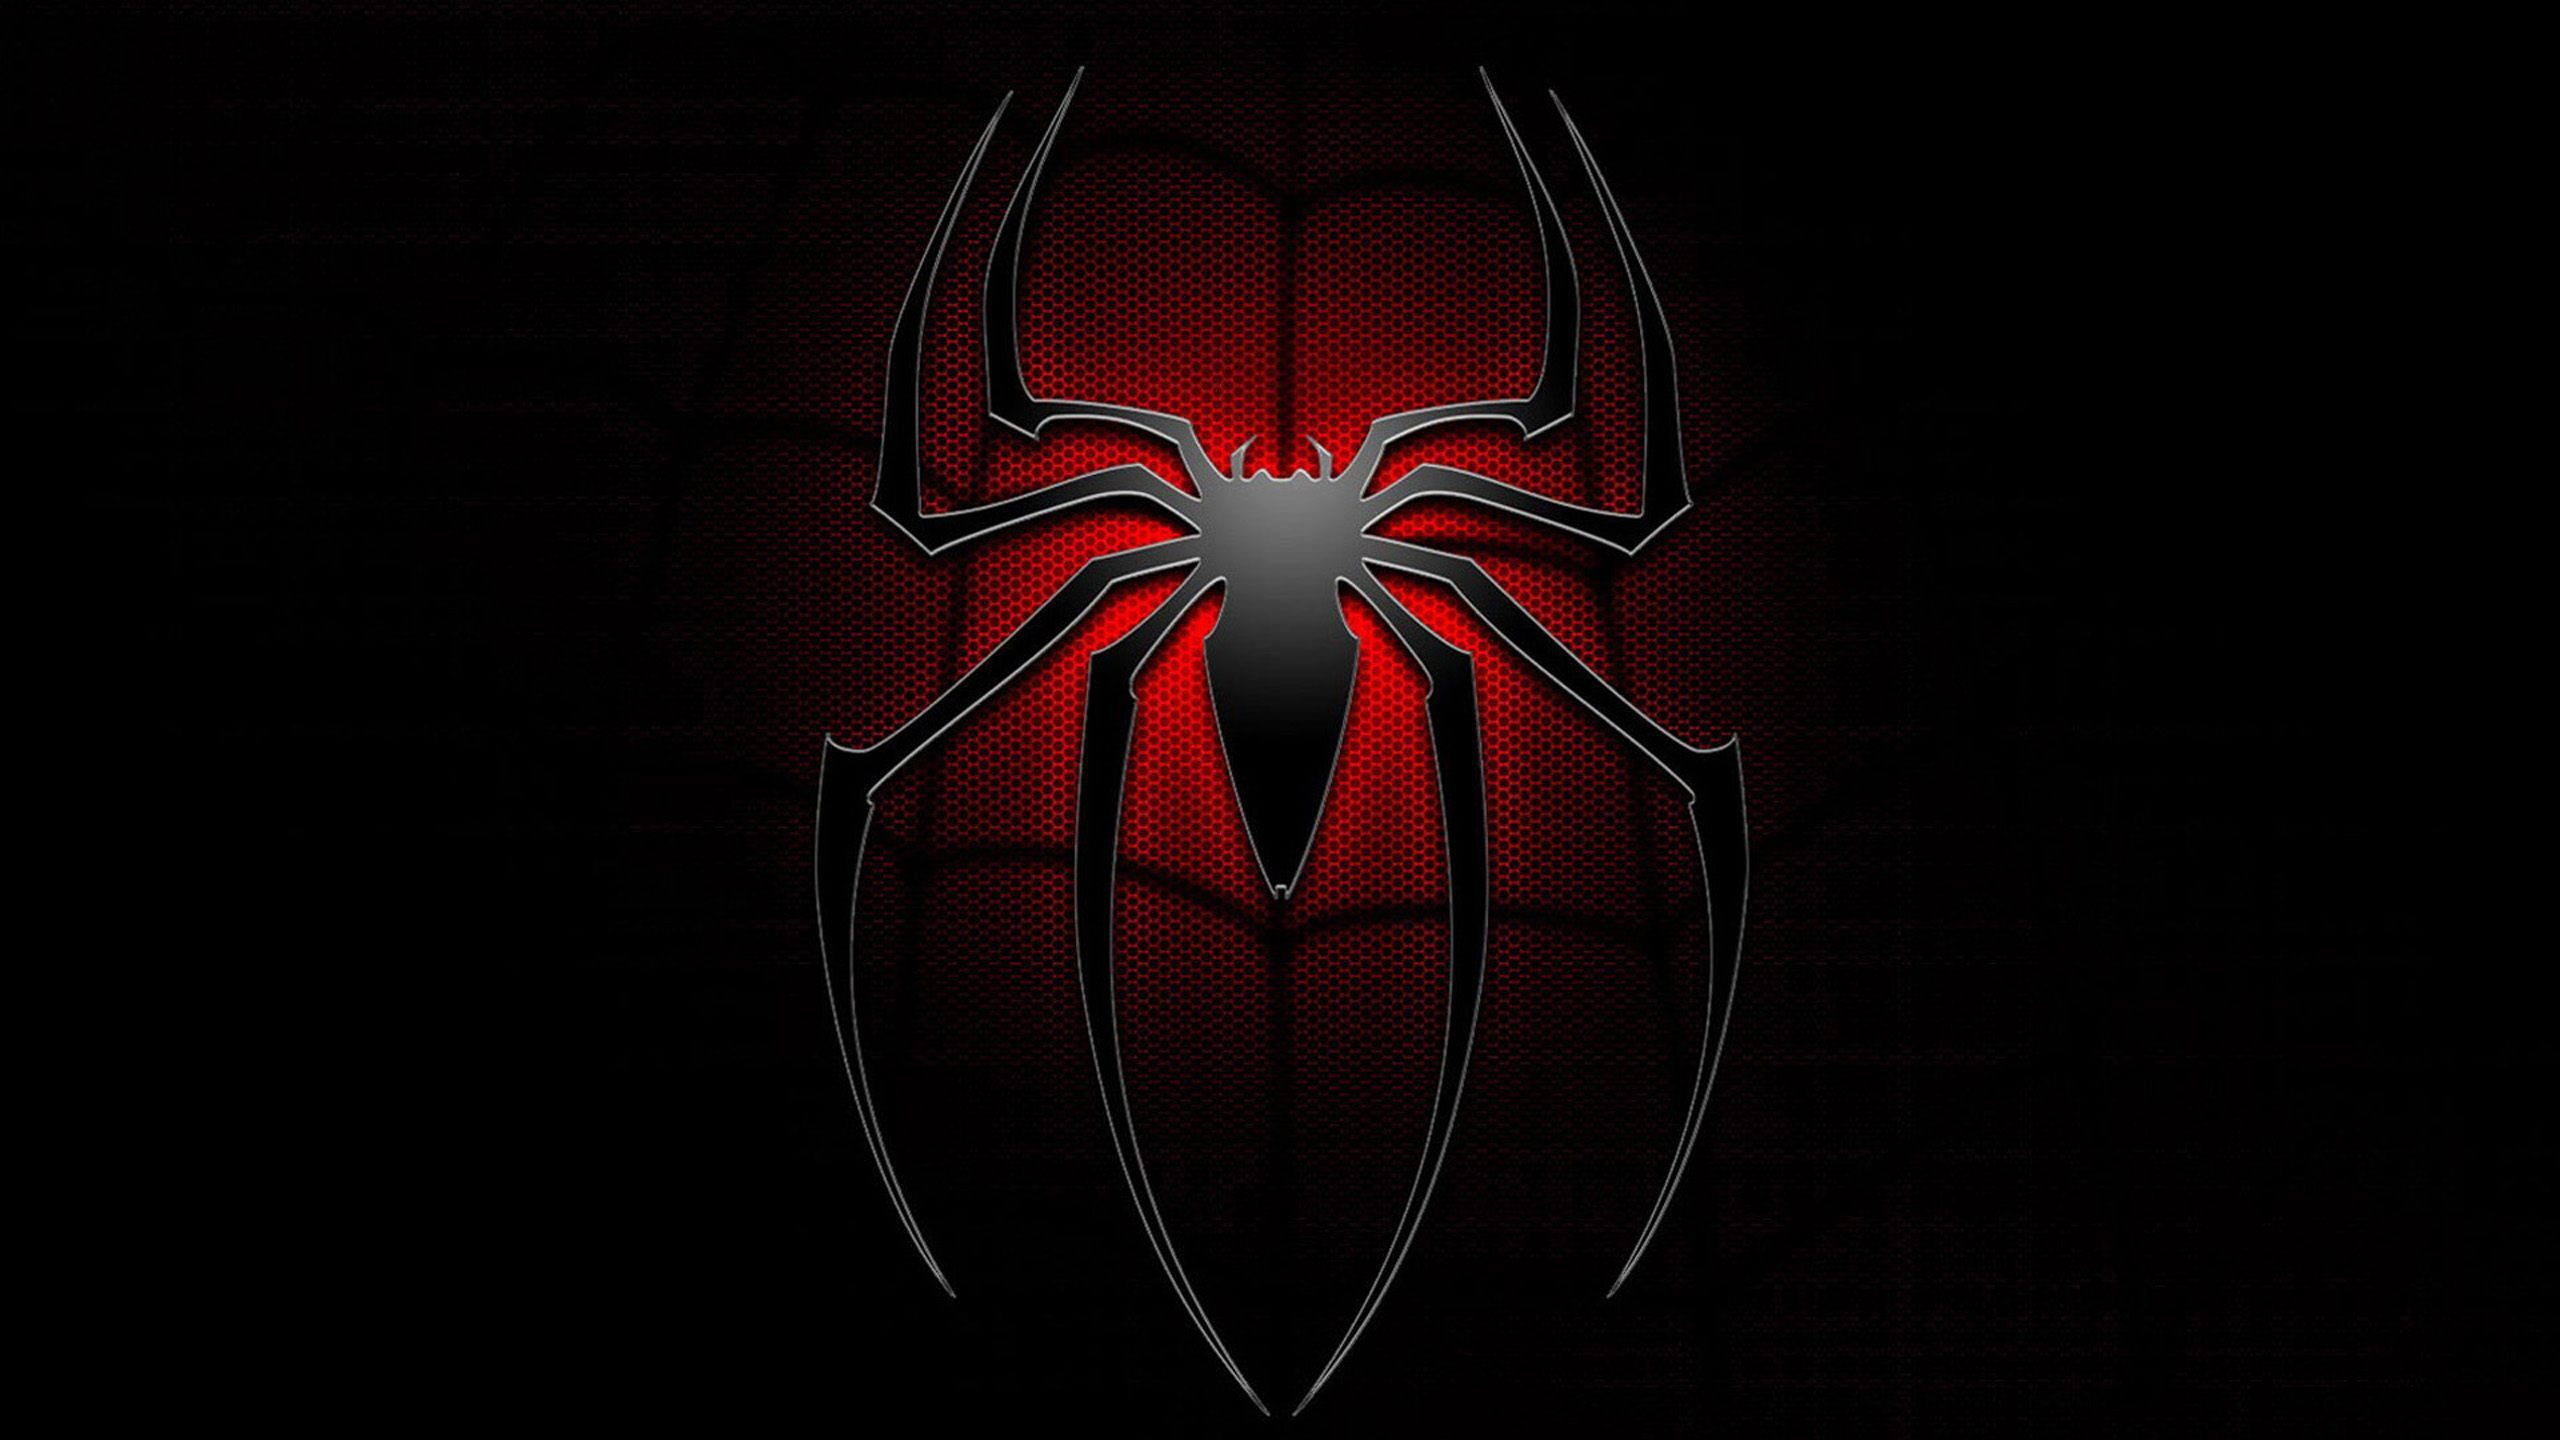 spiderman logo background wallpaper hd for desktop